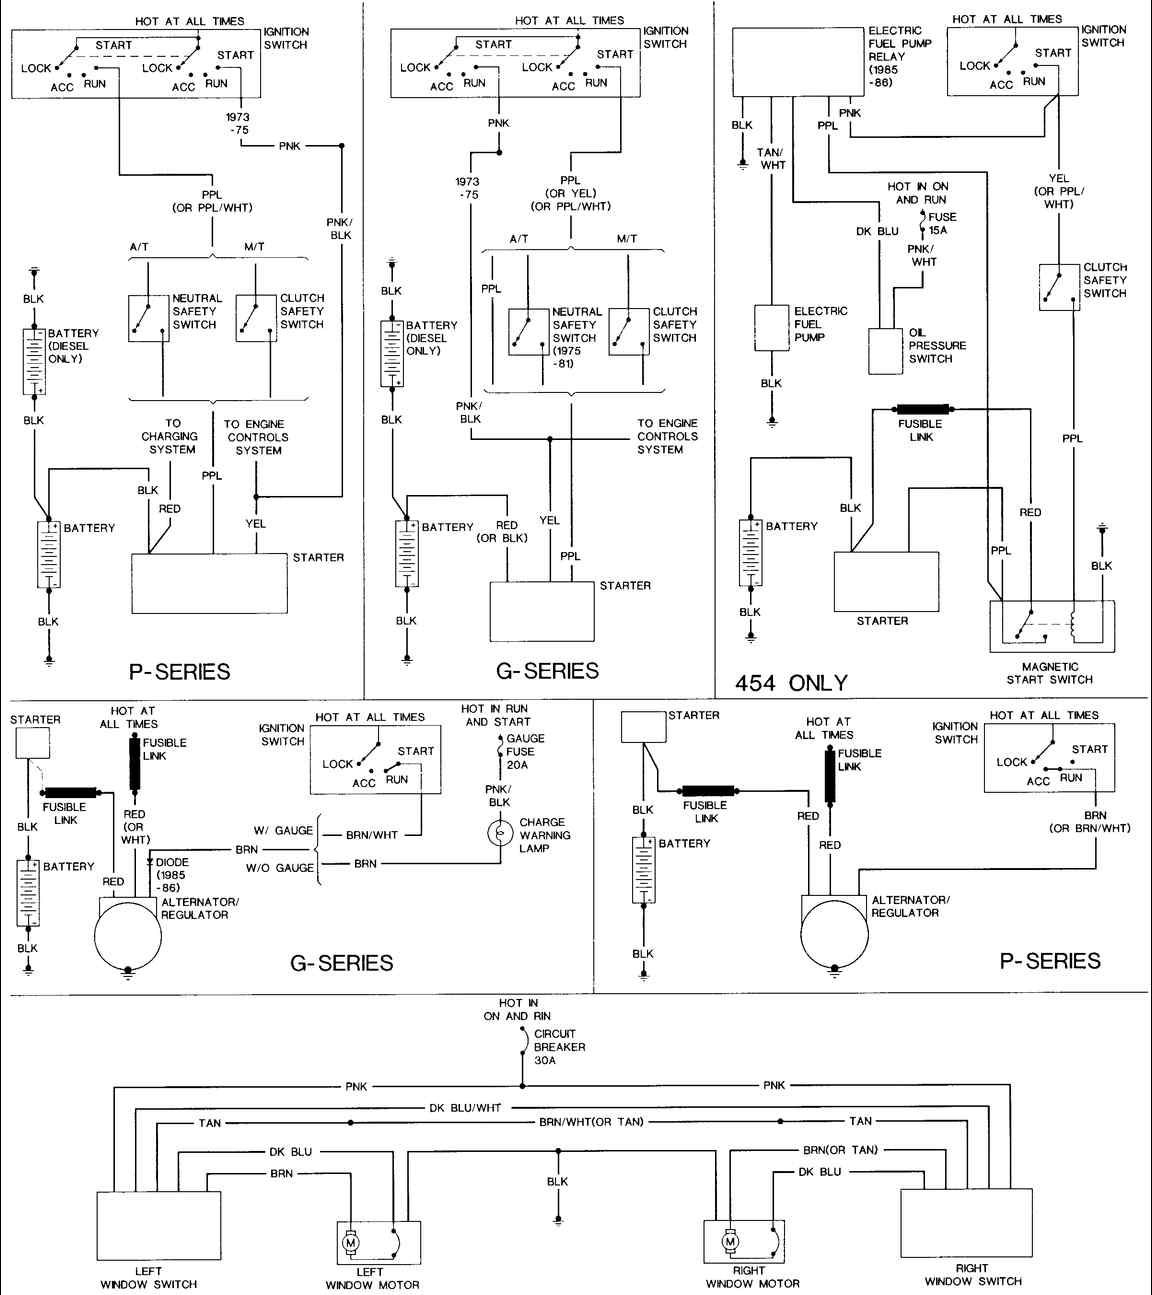 small resolution of 1980 chevy truck wiring diagram images gallery